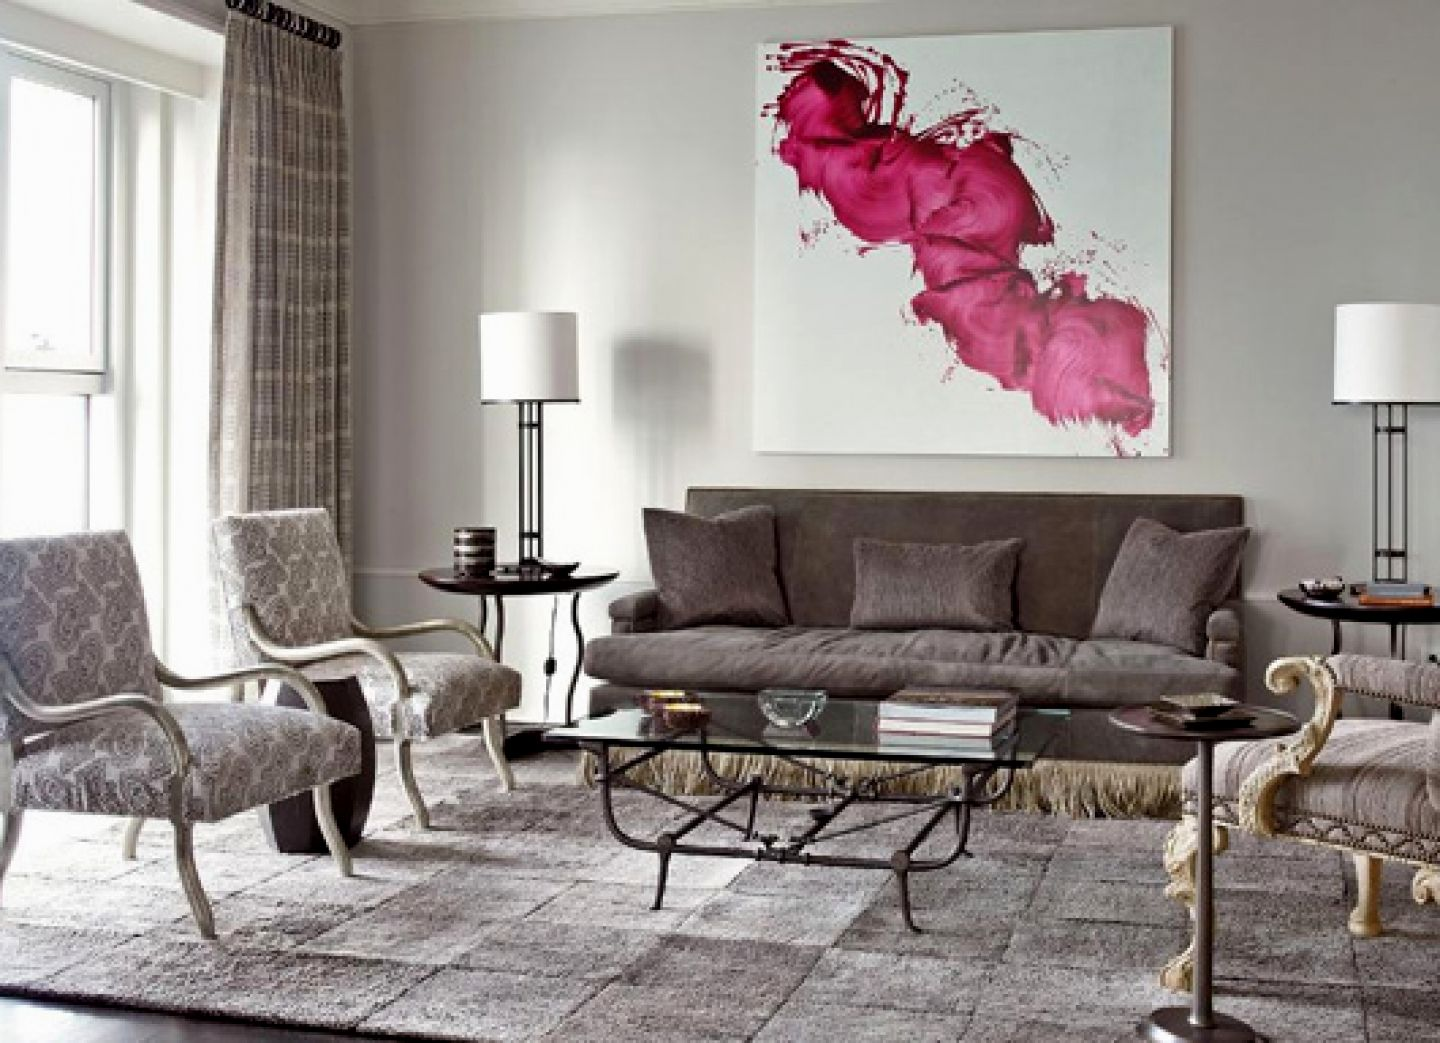 cool sectional pit sofa photograph-Terrific Sectional Pit sofa Concept